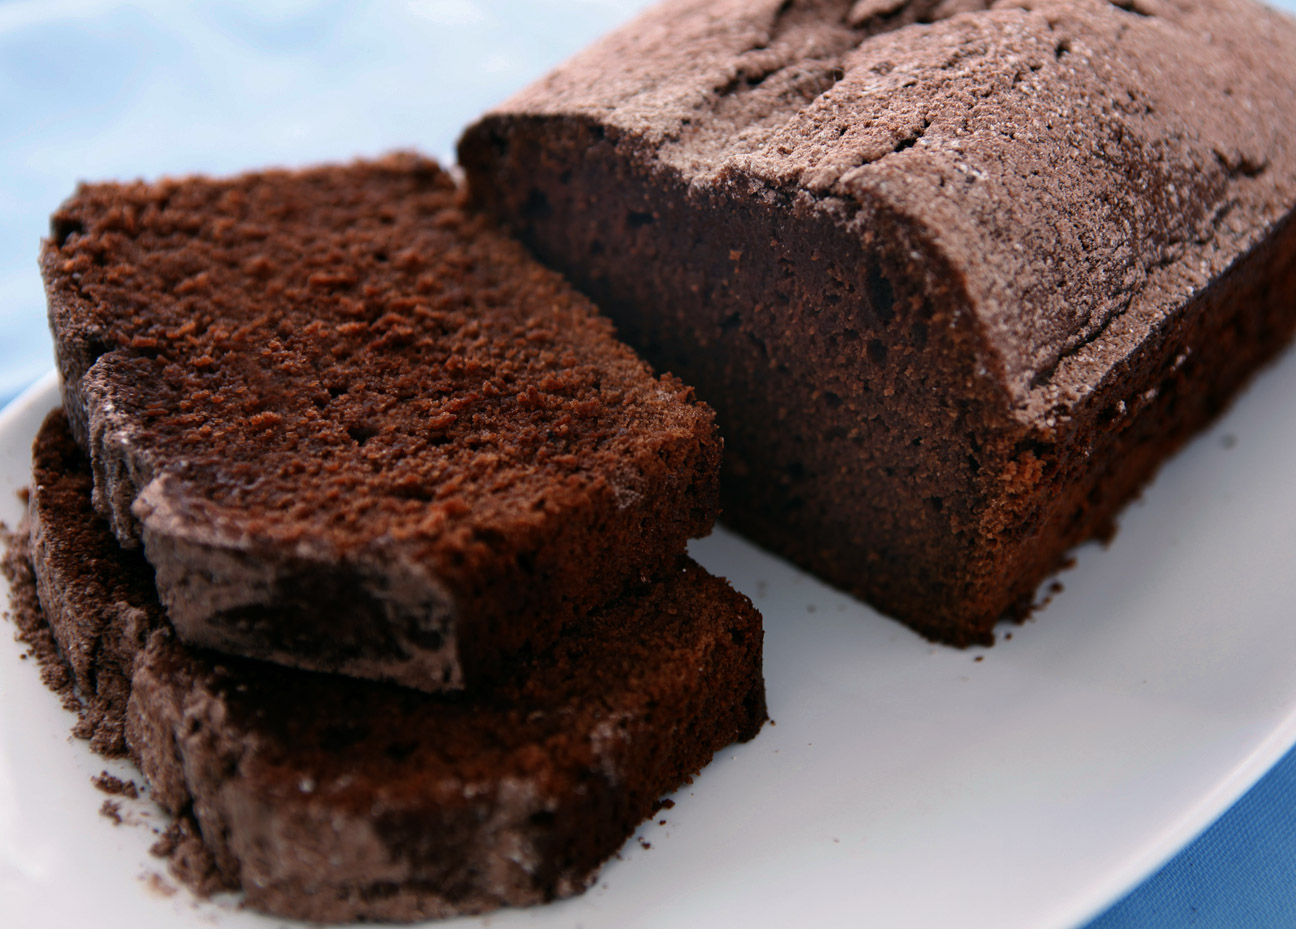 Confessions of a Bake-aholic: Chocolate Pound Cake and an Interview